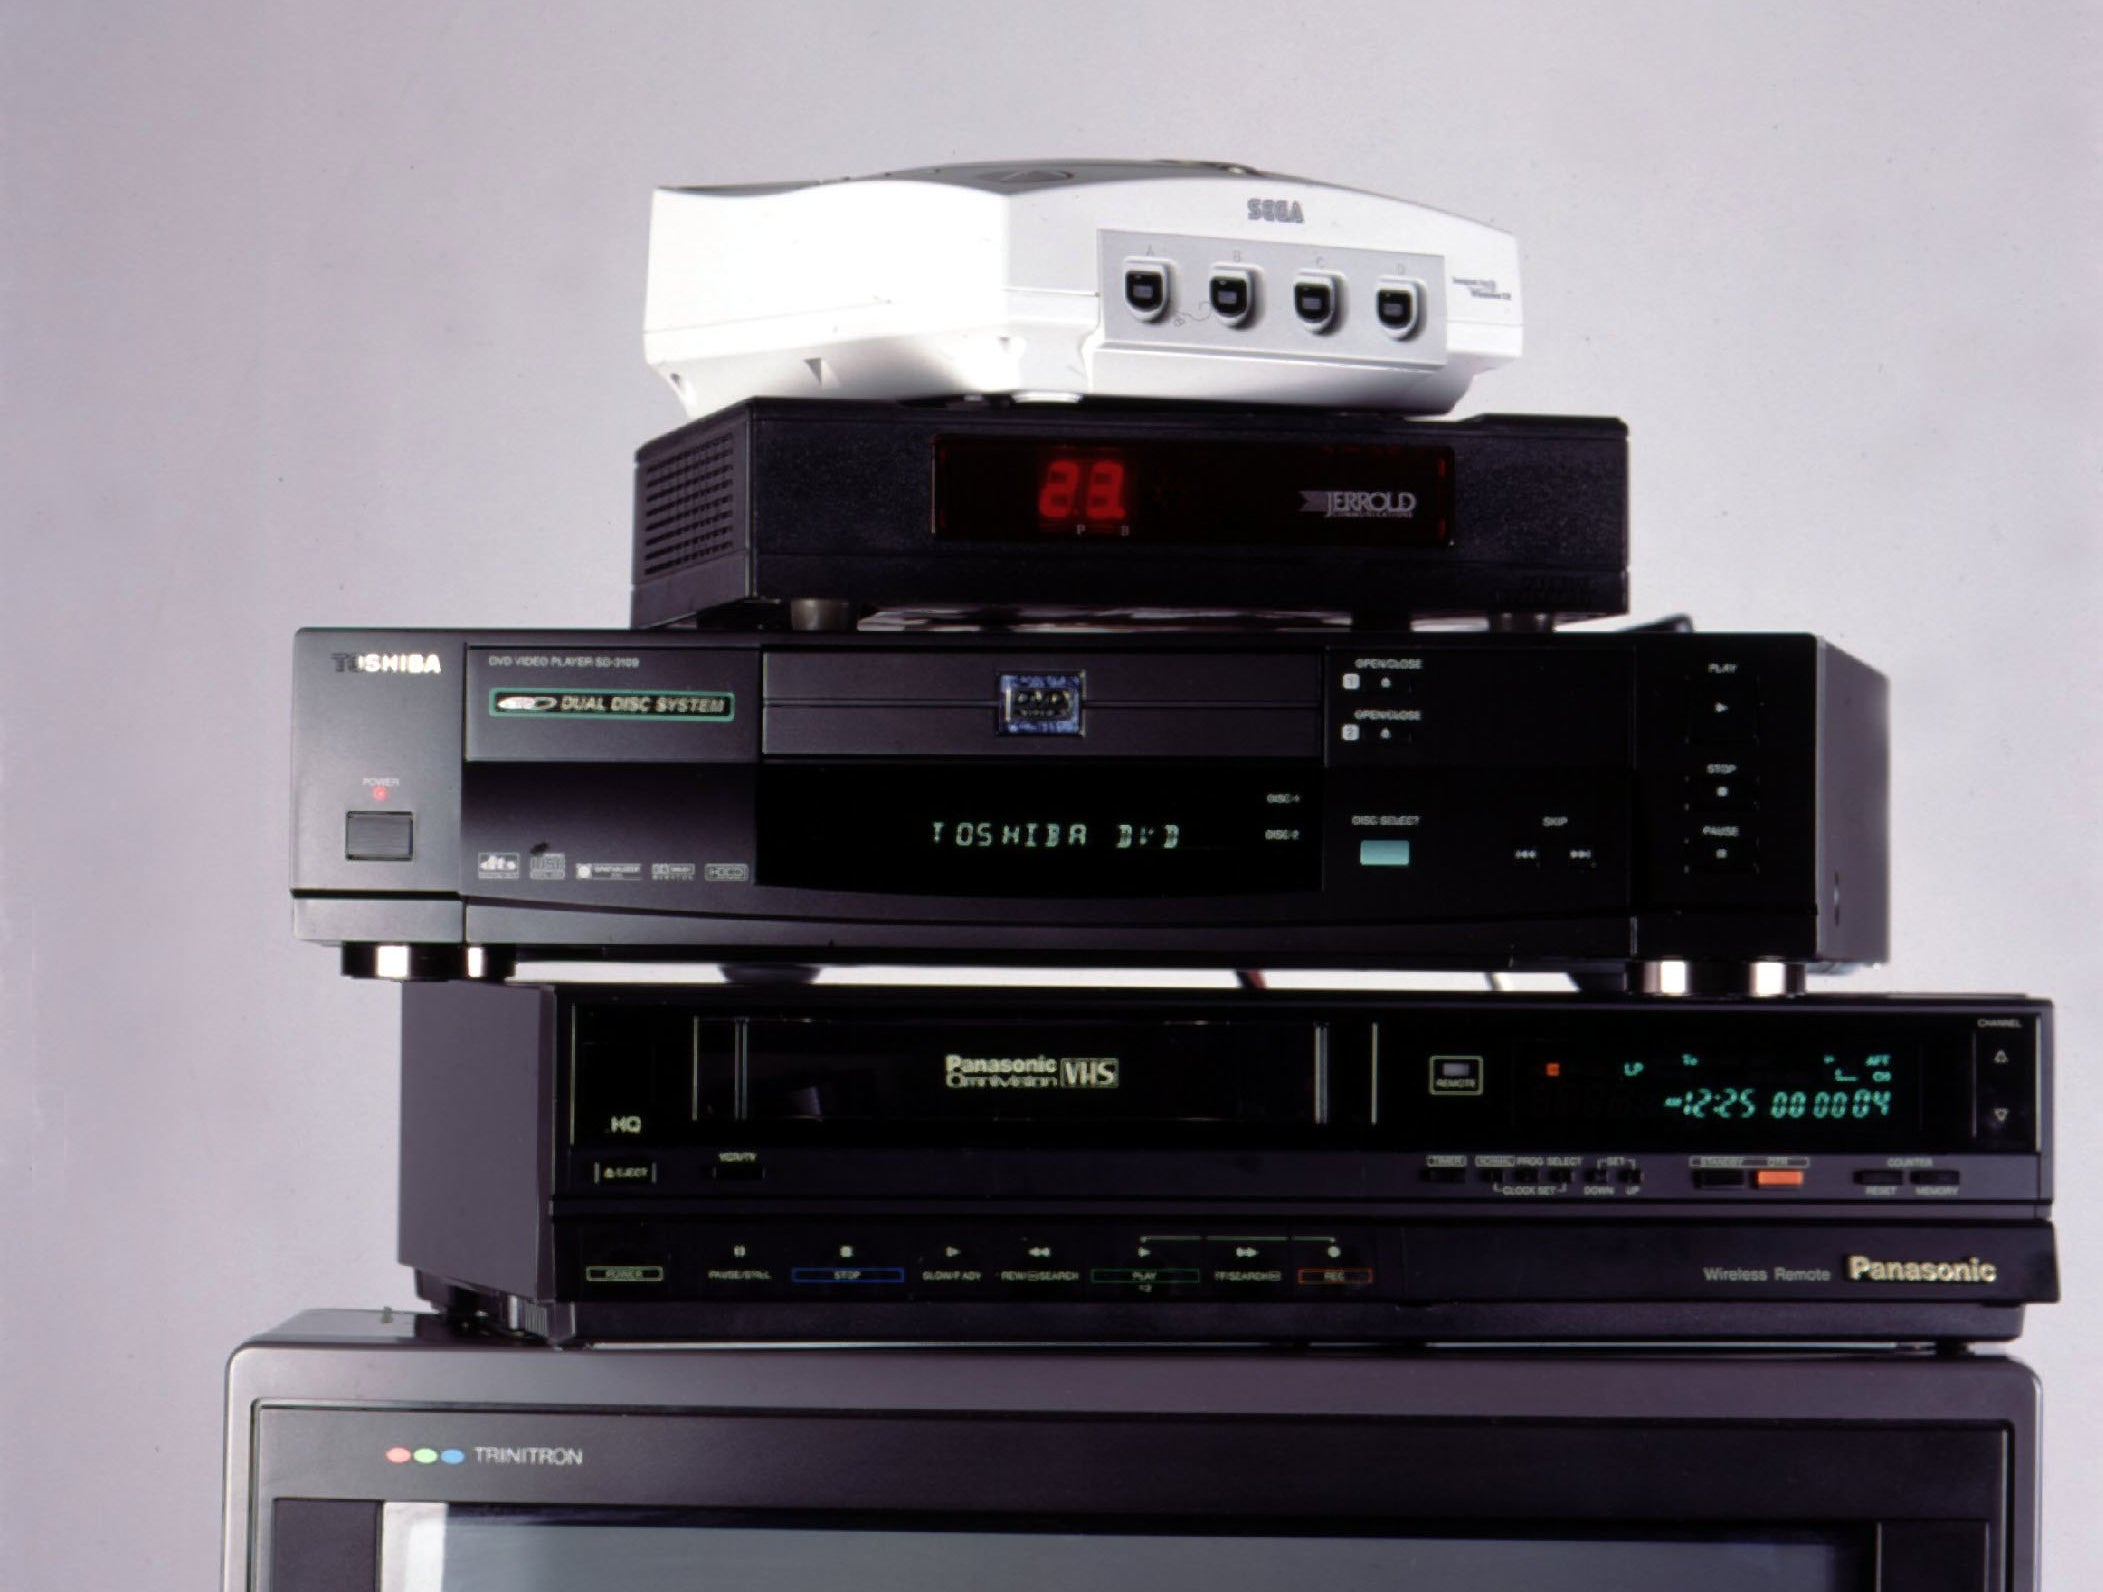 A Sega DreamCast, a DVD player, and a VCR stacked on top of TV.